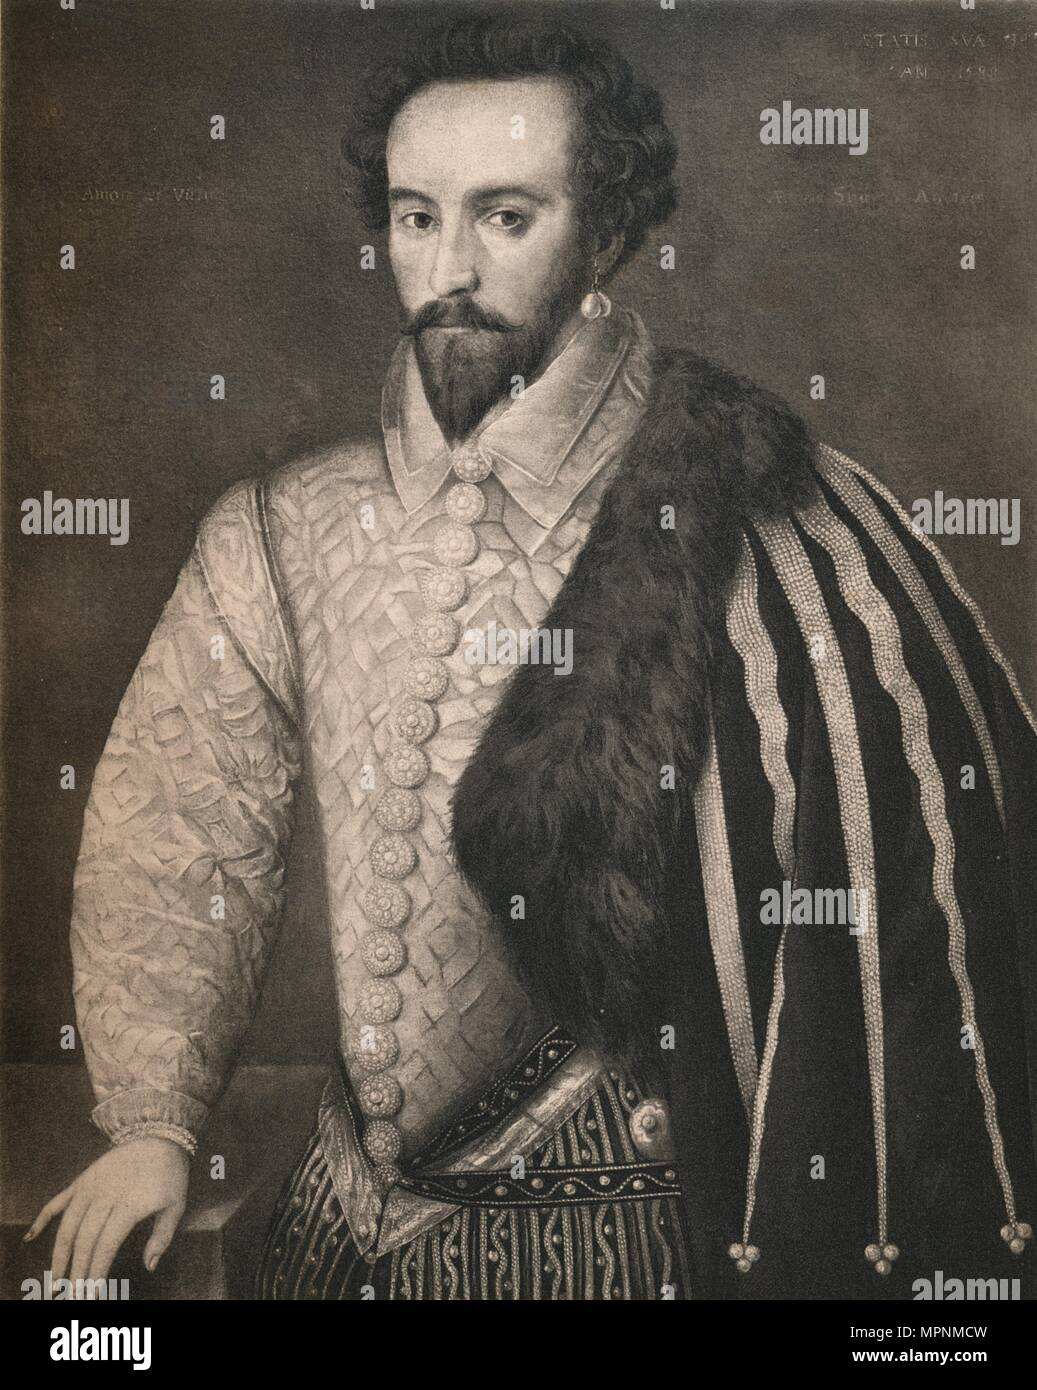 'Sir Walter Raleigh', 1588, (1904). Artist: Unknown. - Stock Image